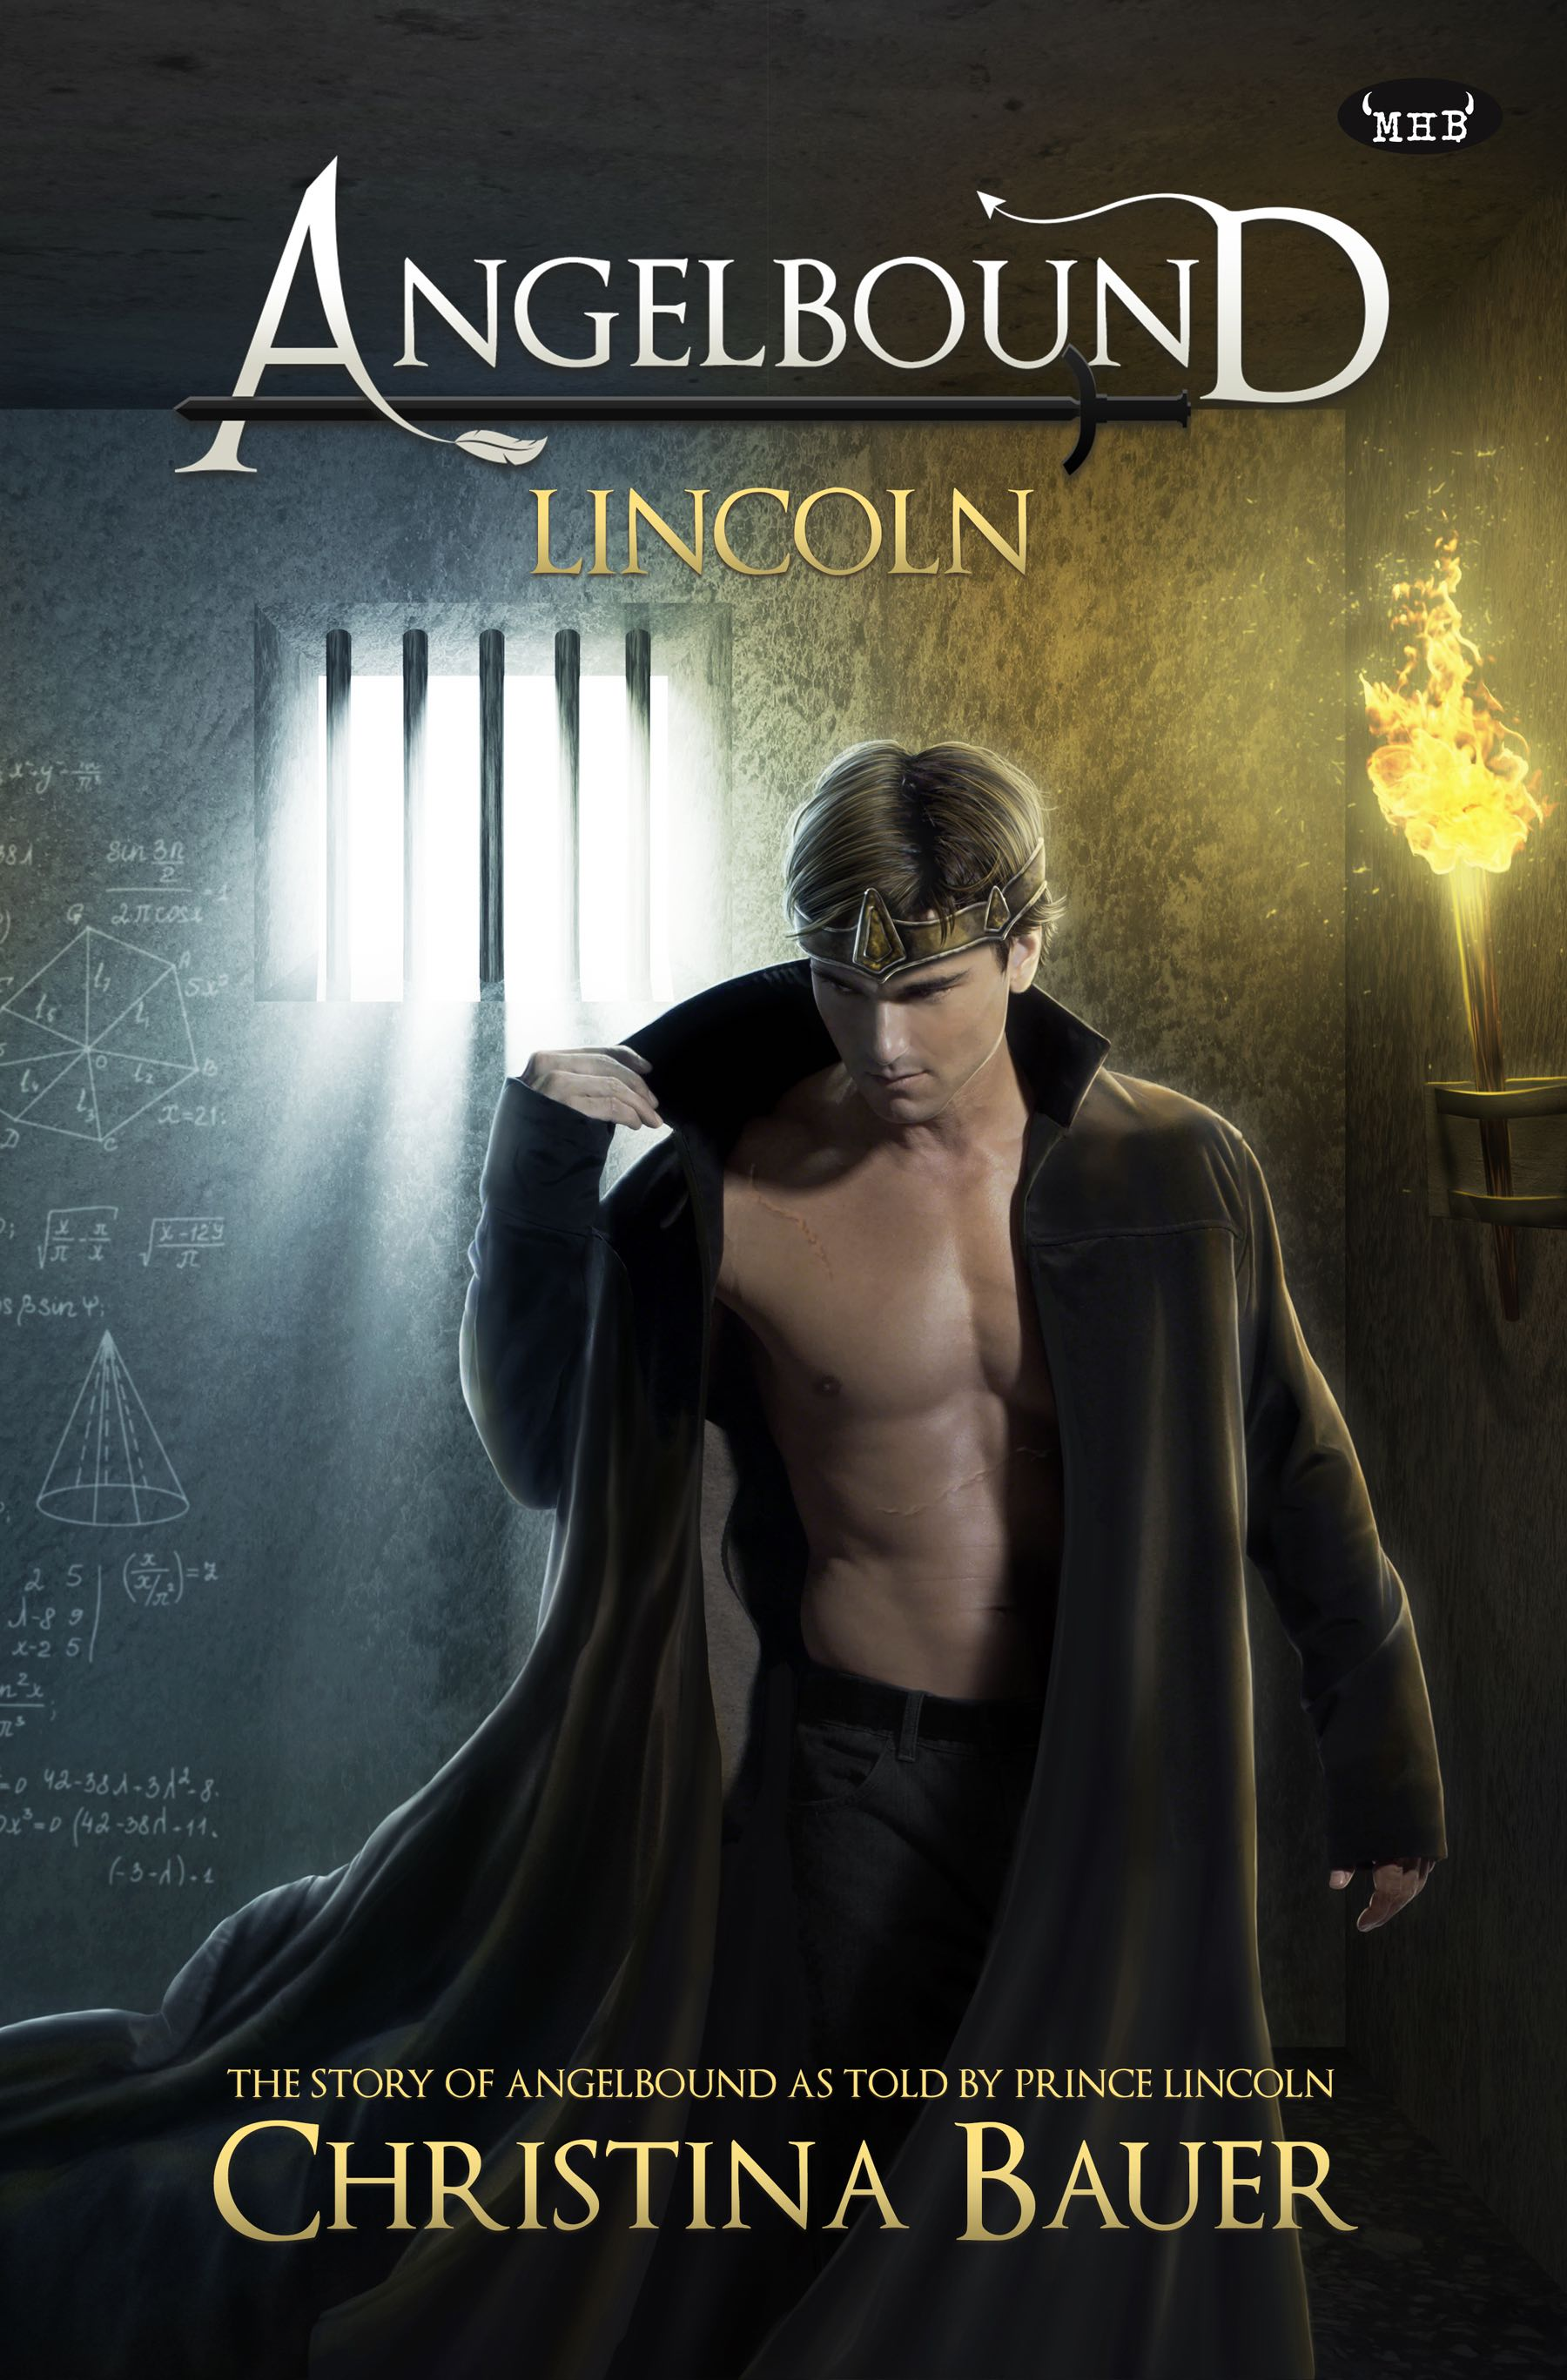 Lincoln (the Angelbound Story from Prince Lincoln's Point Of View)